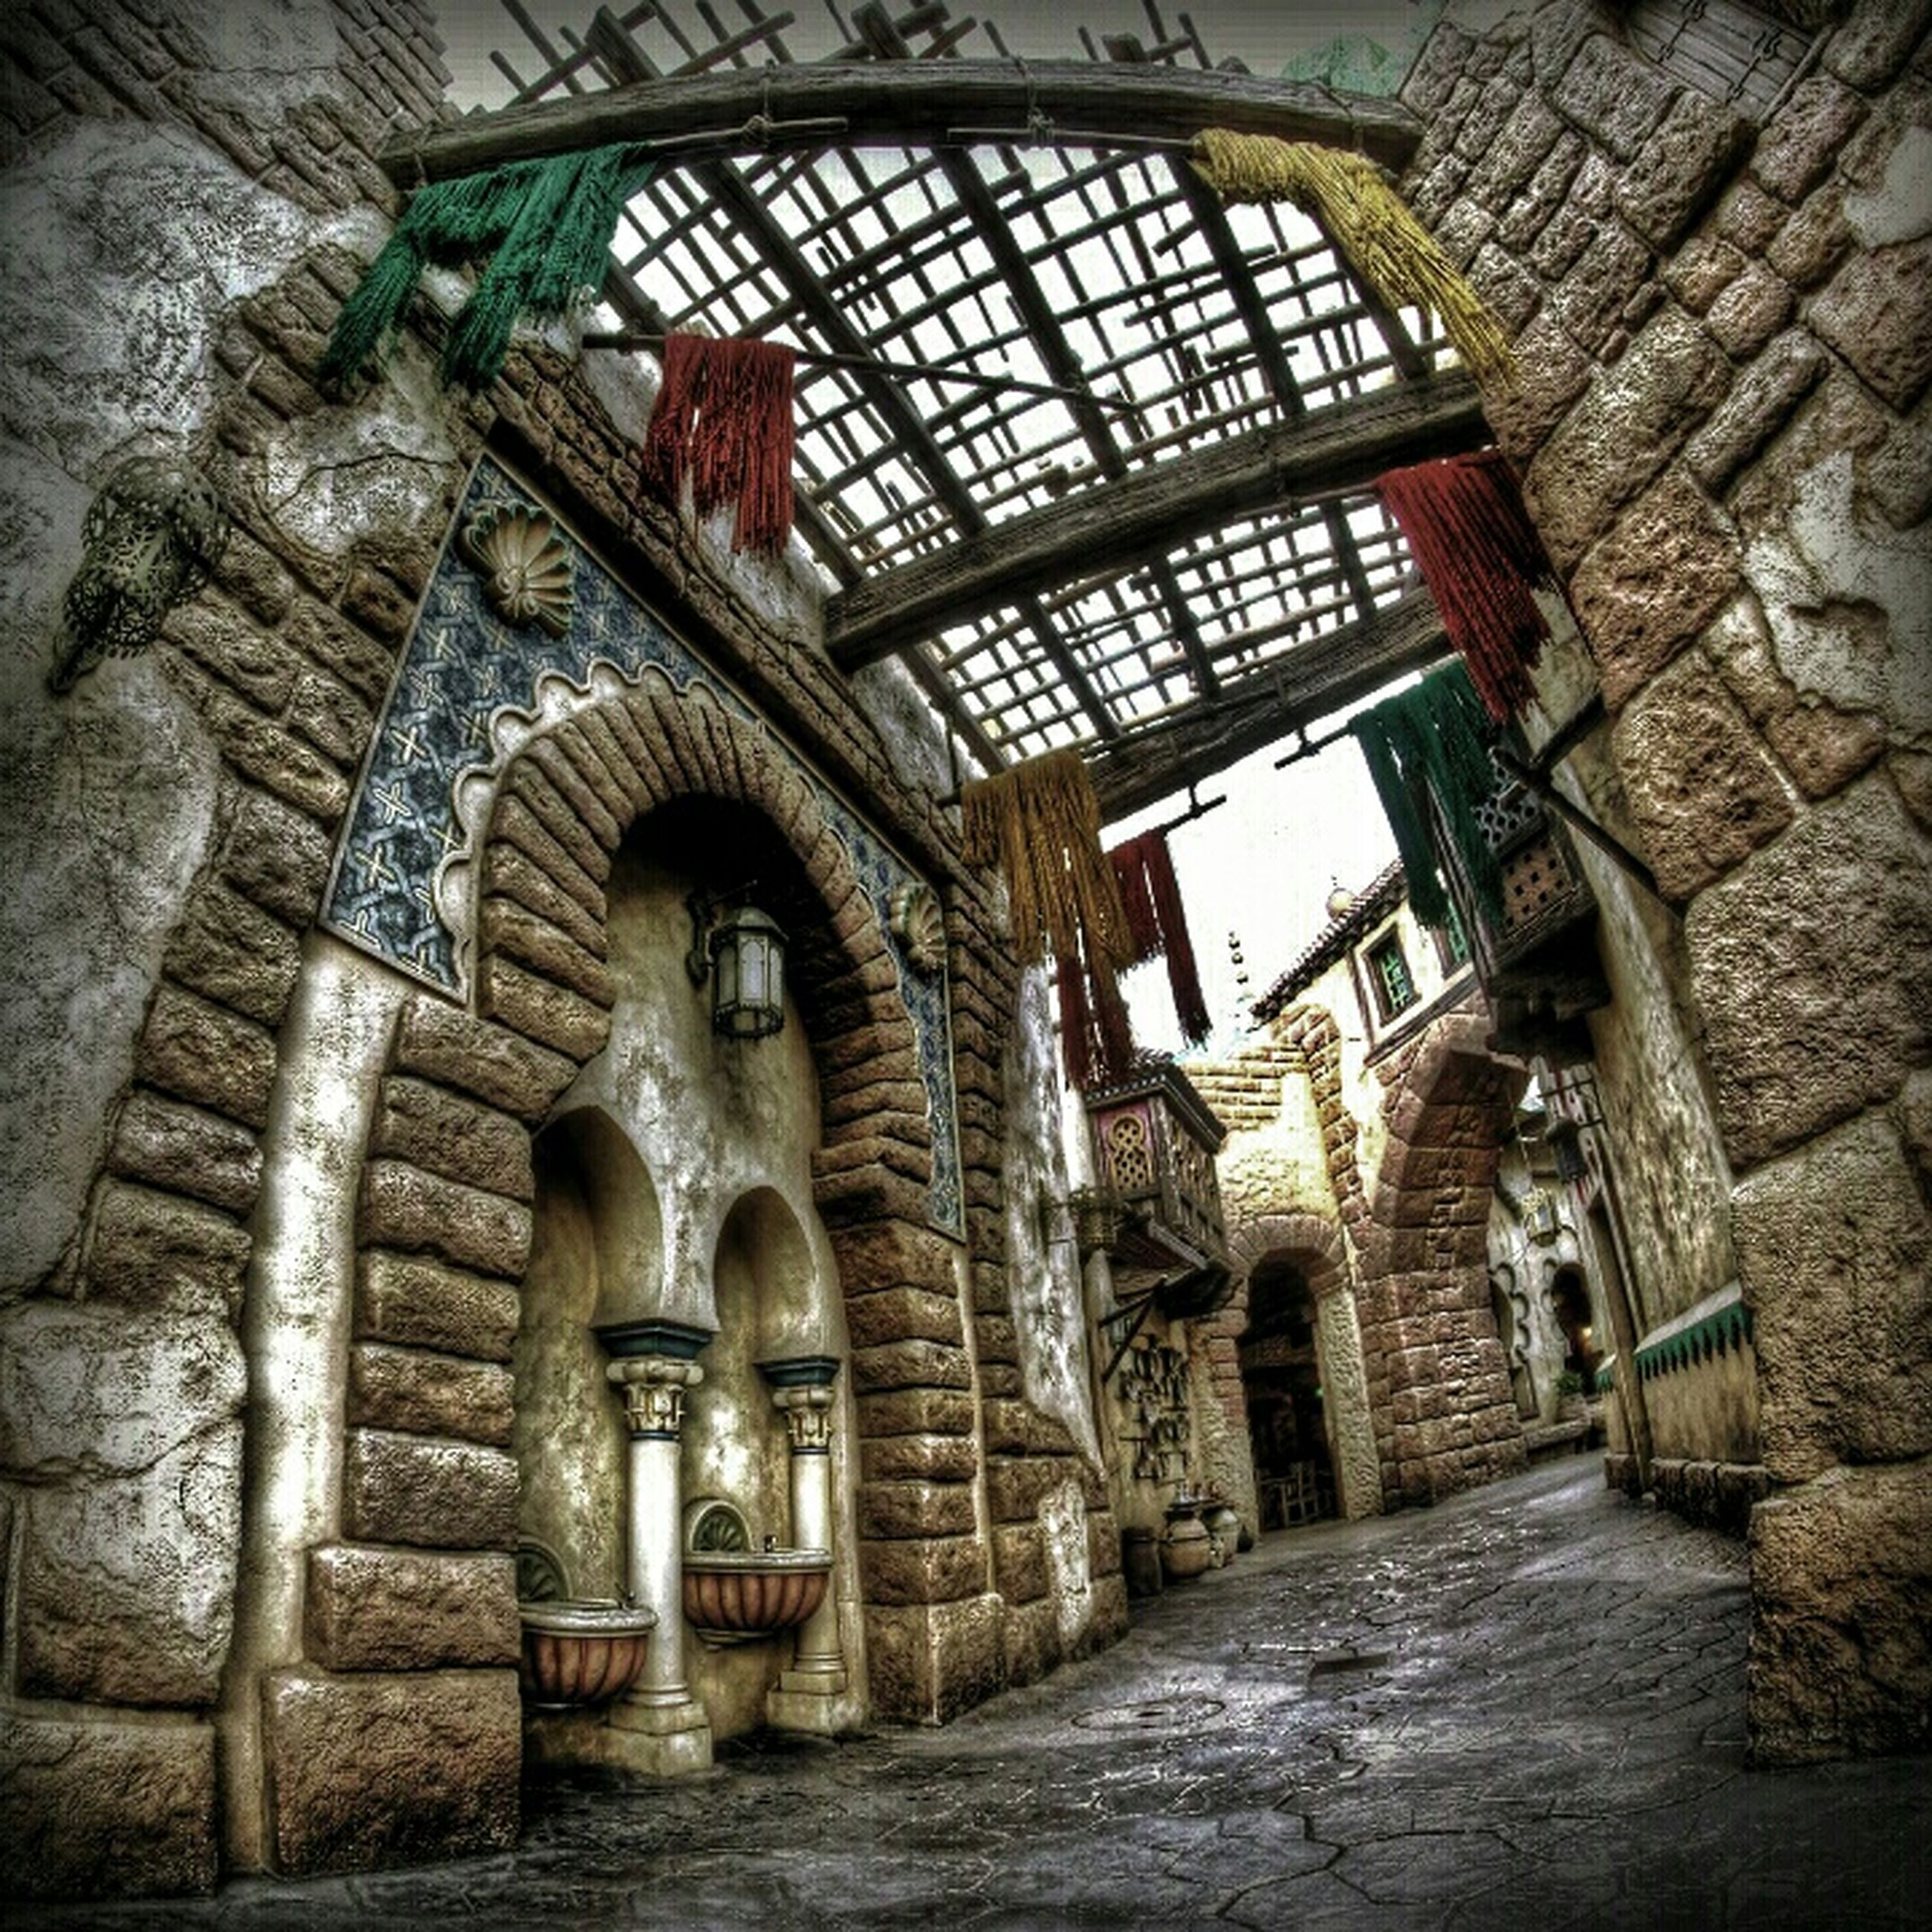 architecture, built structure, building exterior, old, arch, abandoned, indoors, brick wall, history, wall - building feature, building, obsolete, damaged, stone wall, deterioration, run-down, entrance, no people, the way forward, day